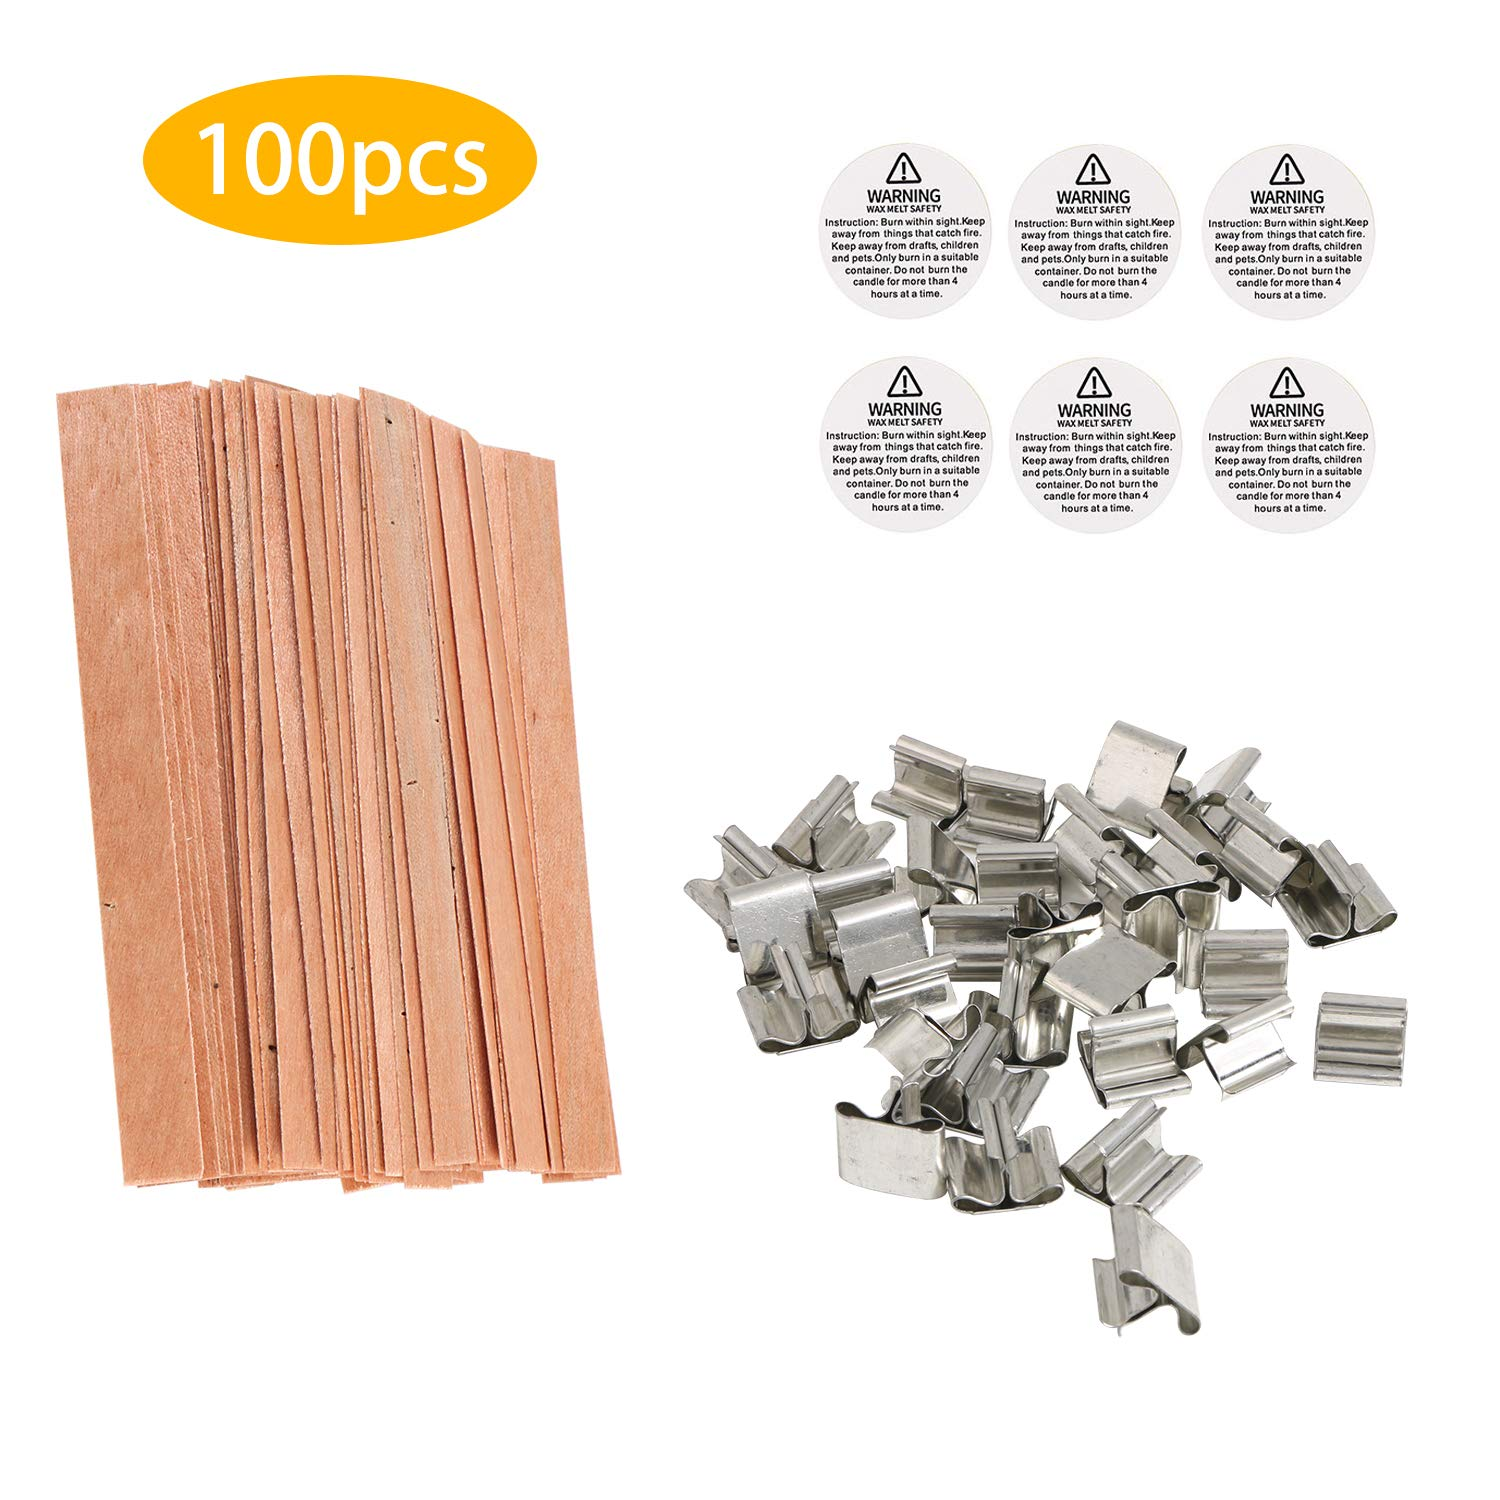 Low Smoke 100 Pieces Natural Candle Wicks 100 Pieces Stickers Benbo Candle Making DIY Kit 108 Pieces Warning Labels and 1 Piece Candle Wick Centering Device for Candle Making and Candle DIY